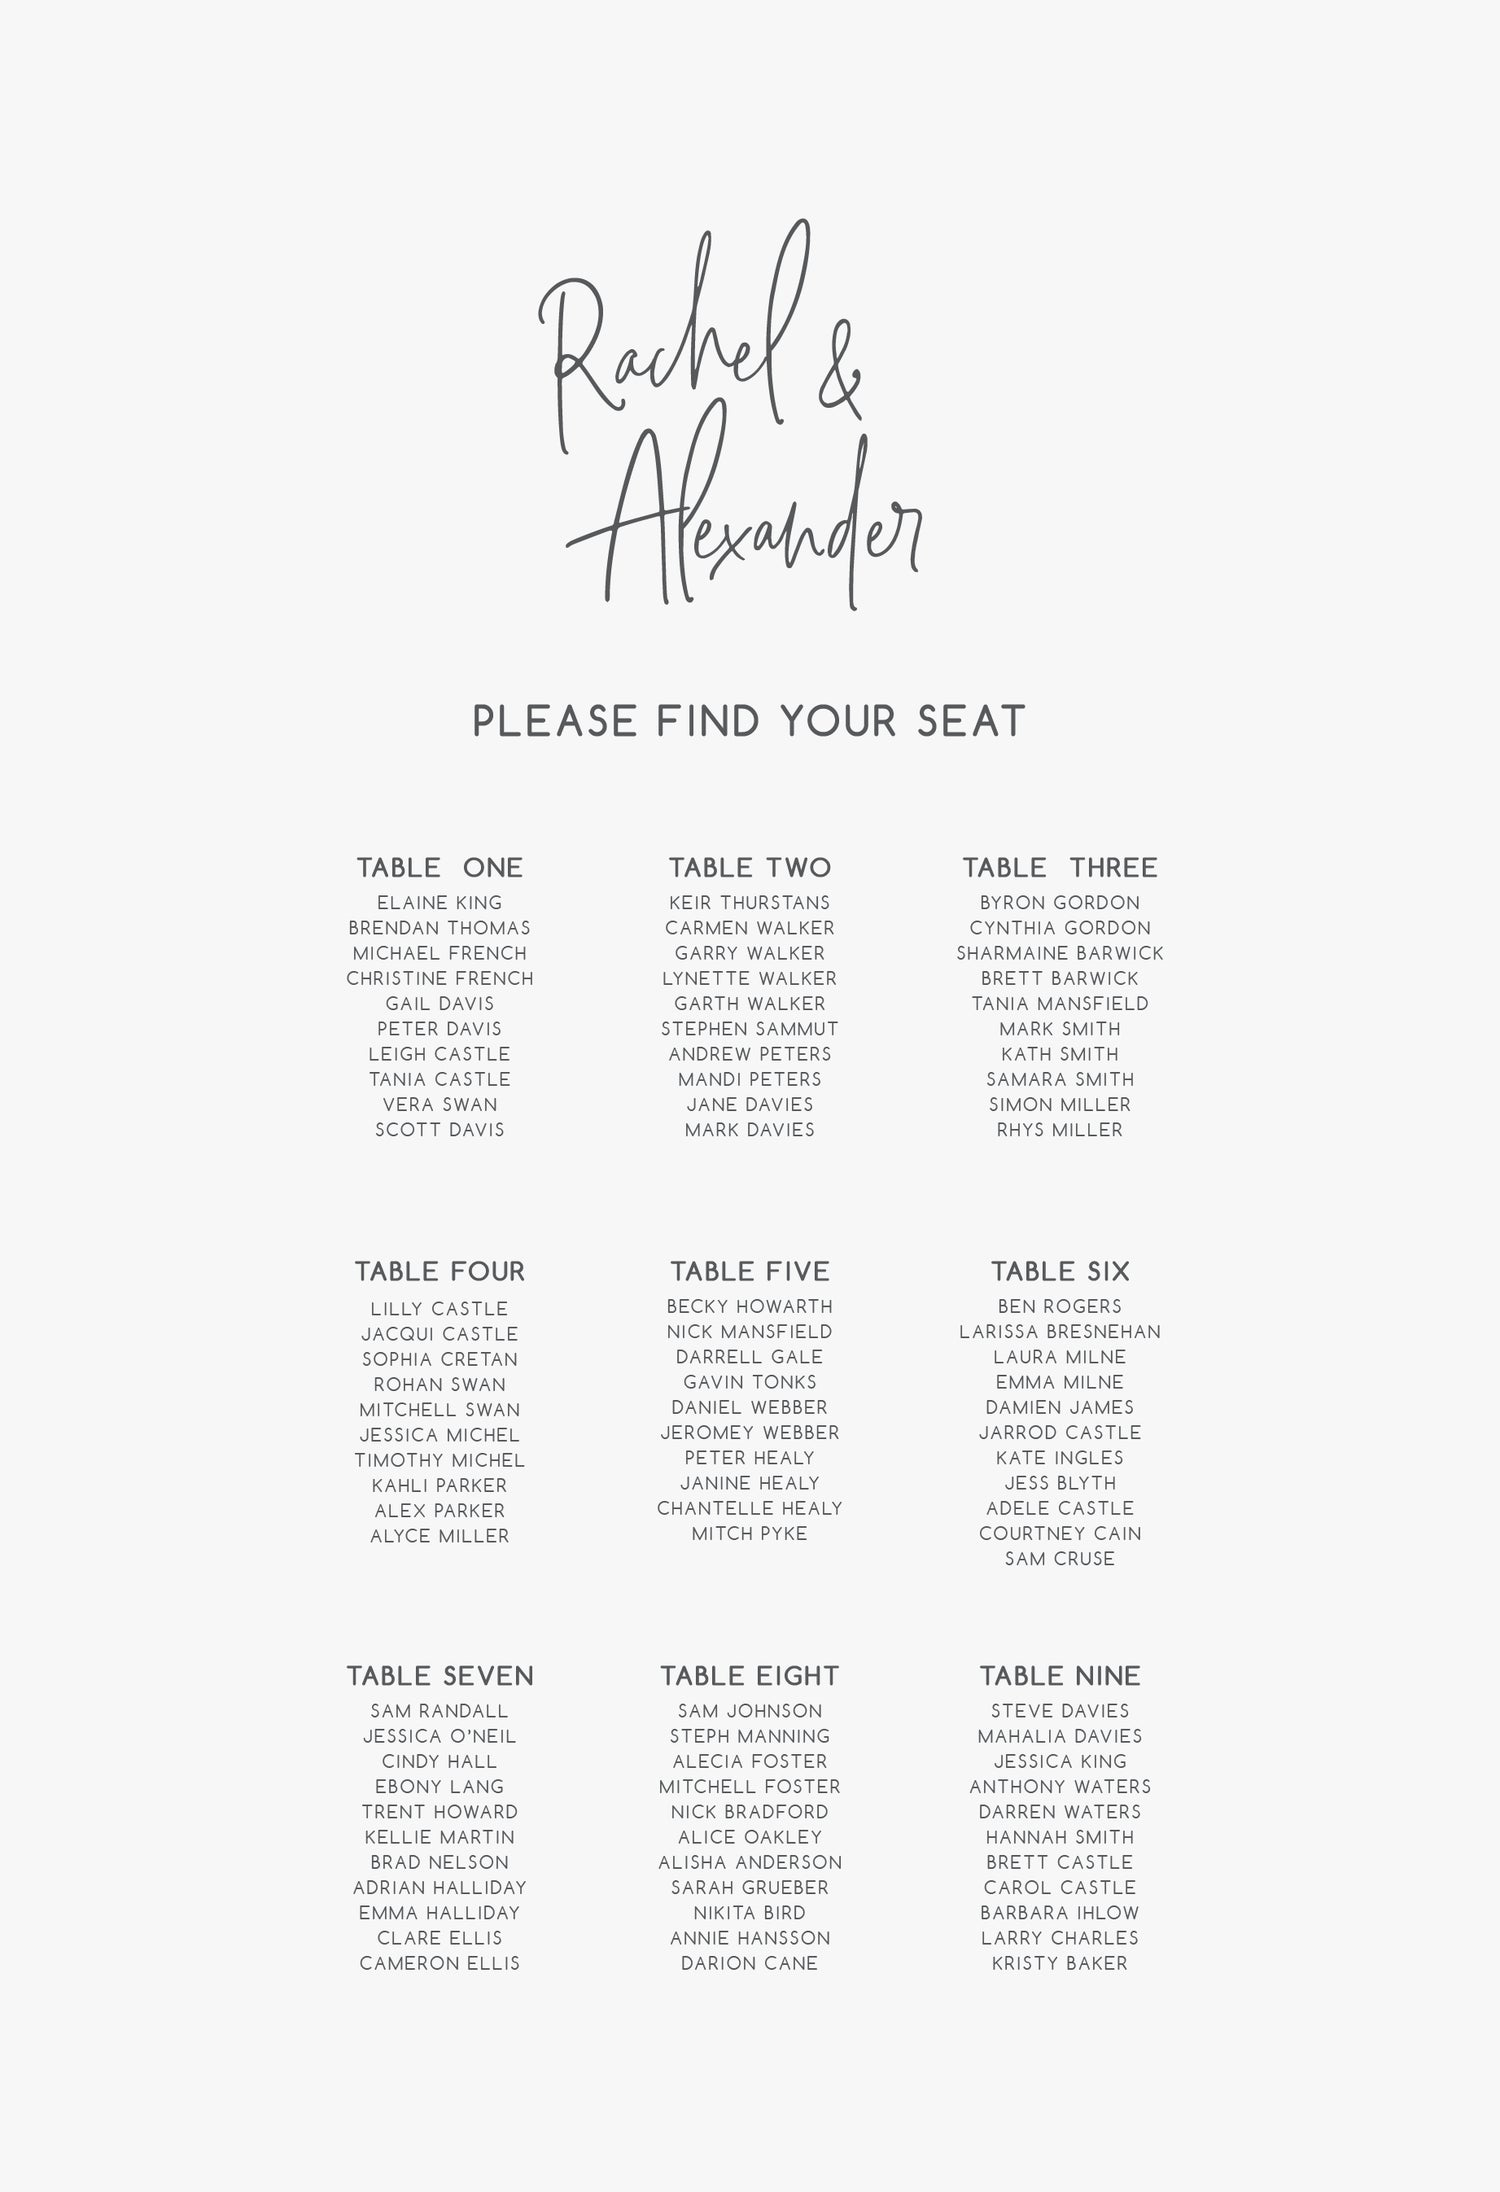 Image of Names of couple seating plan